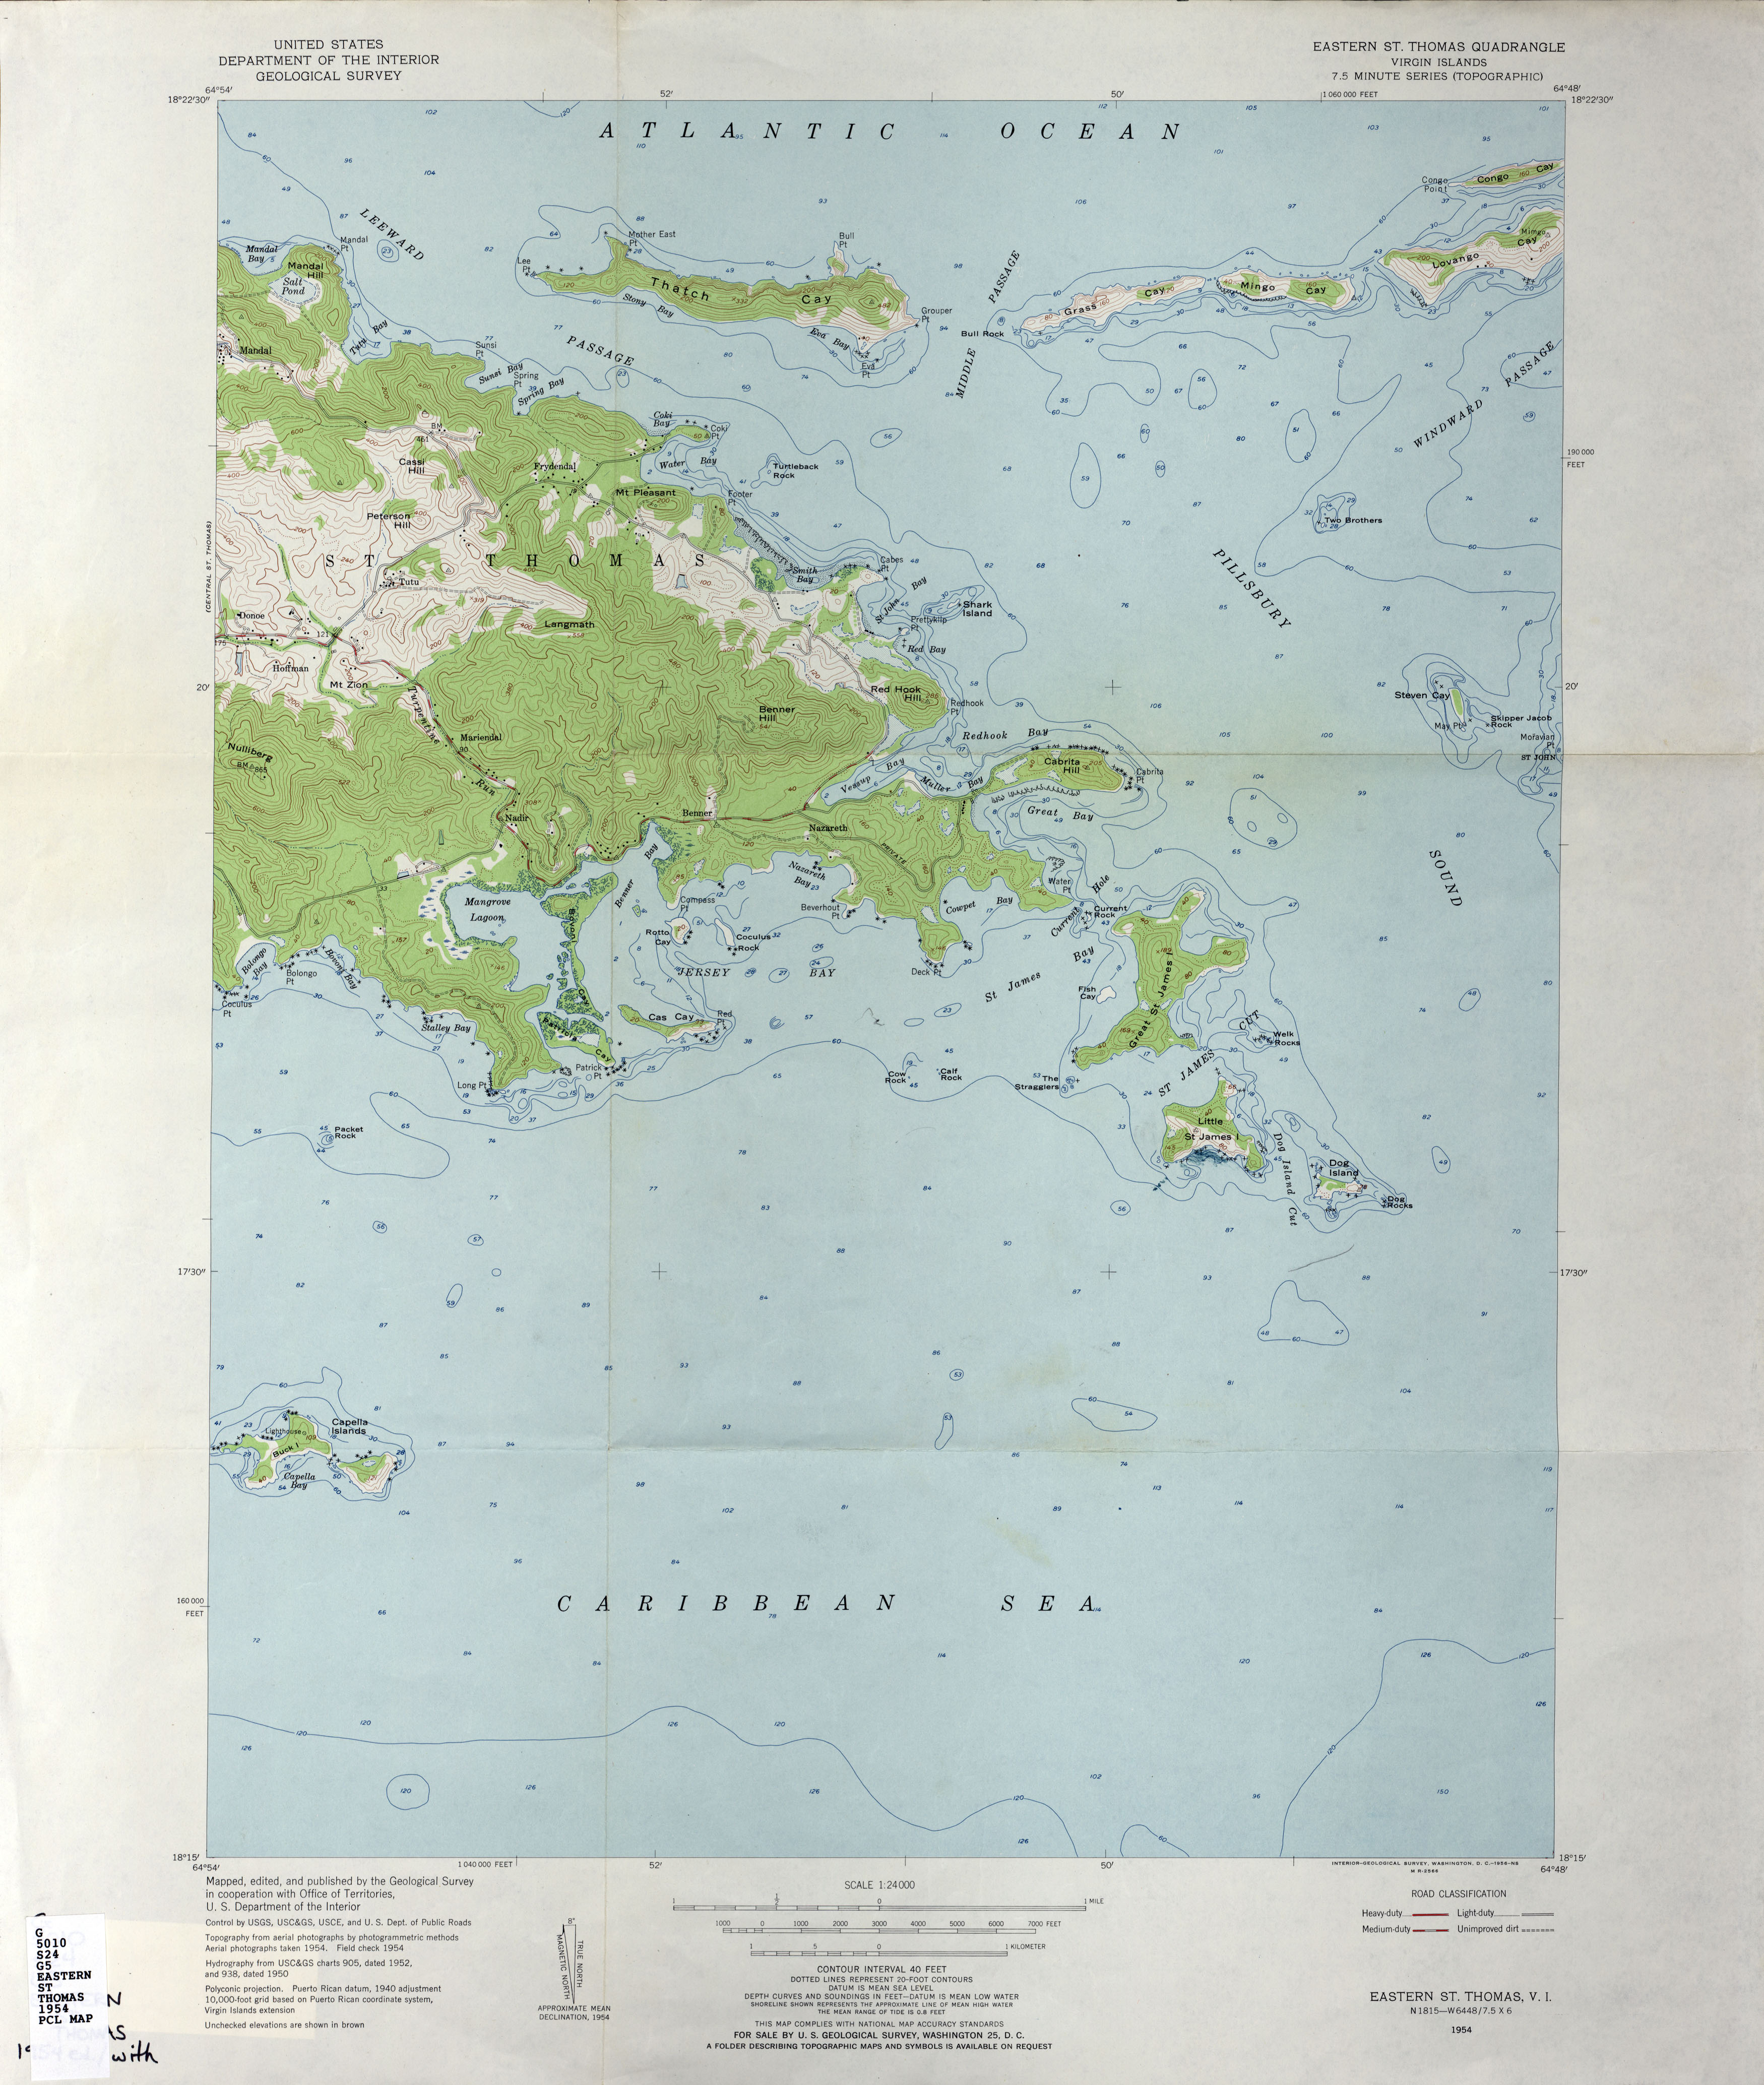 US Virgin Islands Topographic Maps PerryCasta eda Map – St Thomas on a Map